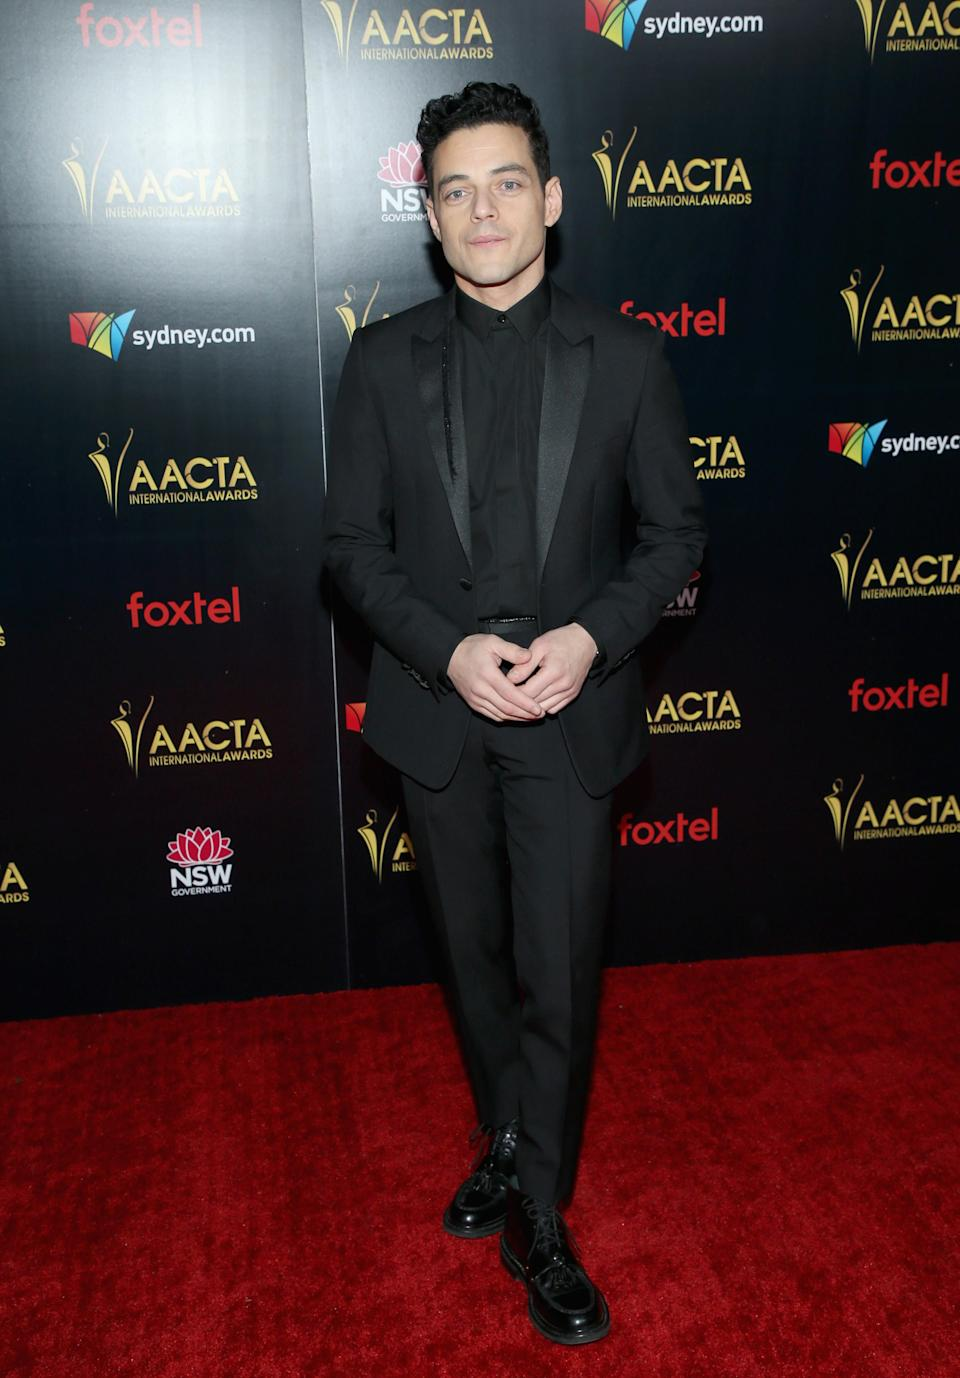 <p>Bohemian Rhapsody star Rami Malek became a first-time AACTA Award winner as he received the Best Lead Actor for his portrayal of Freddie Mercury. Photo: Getty </p>